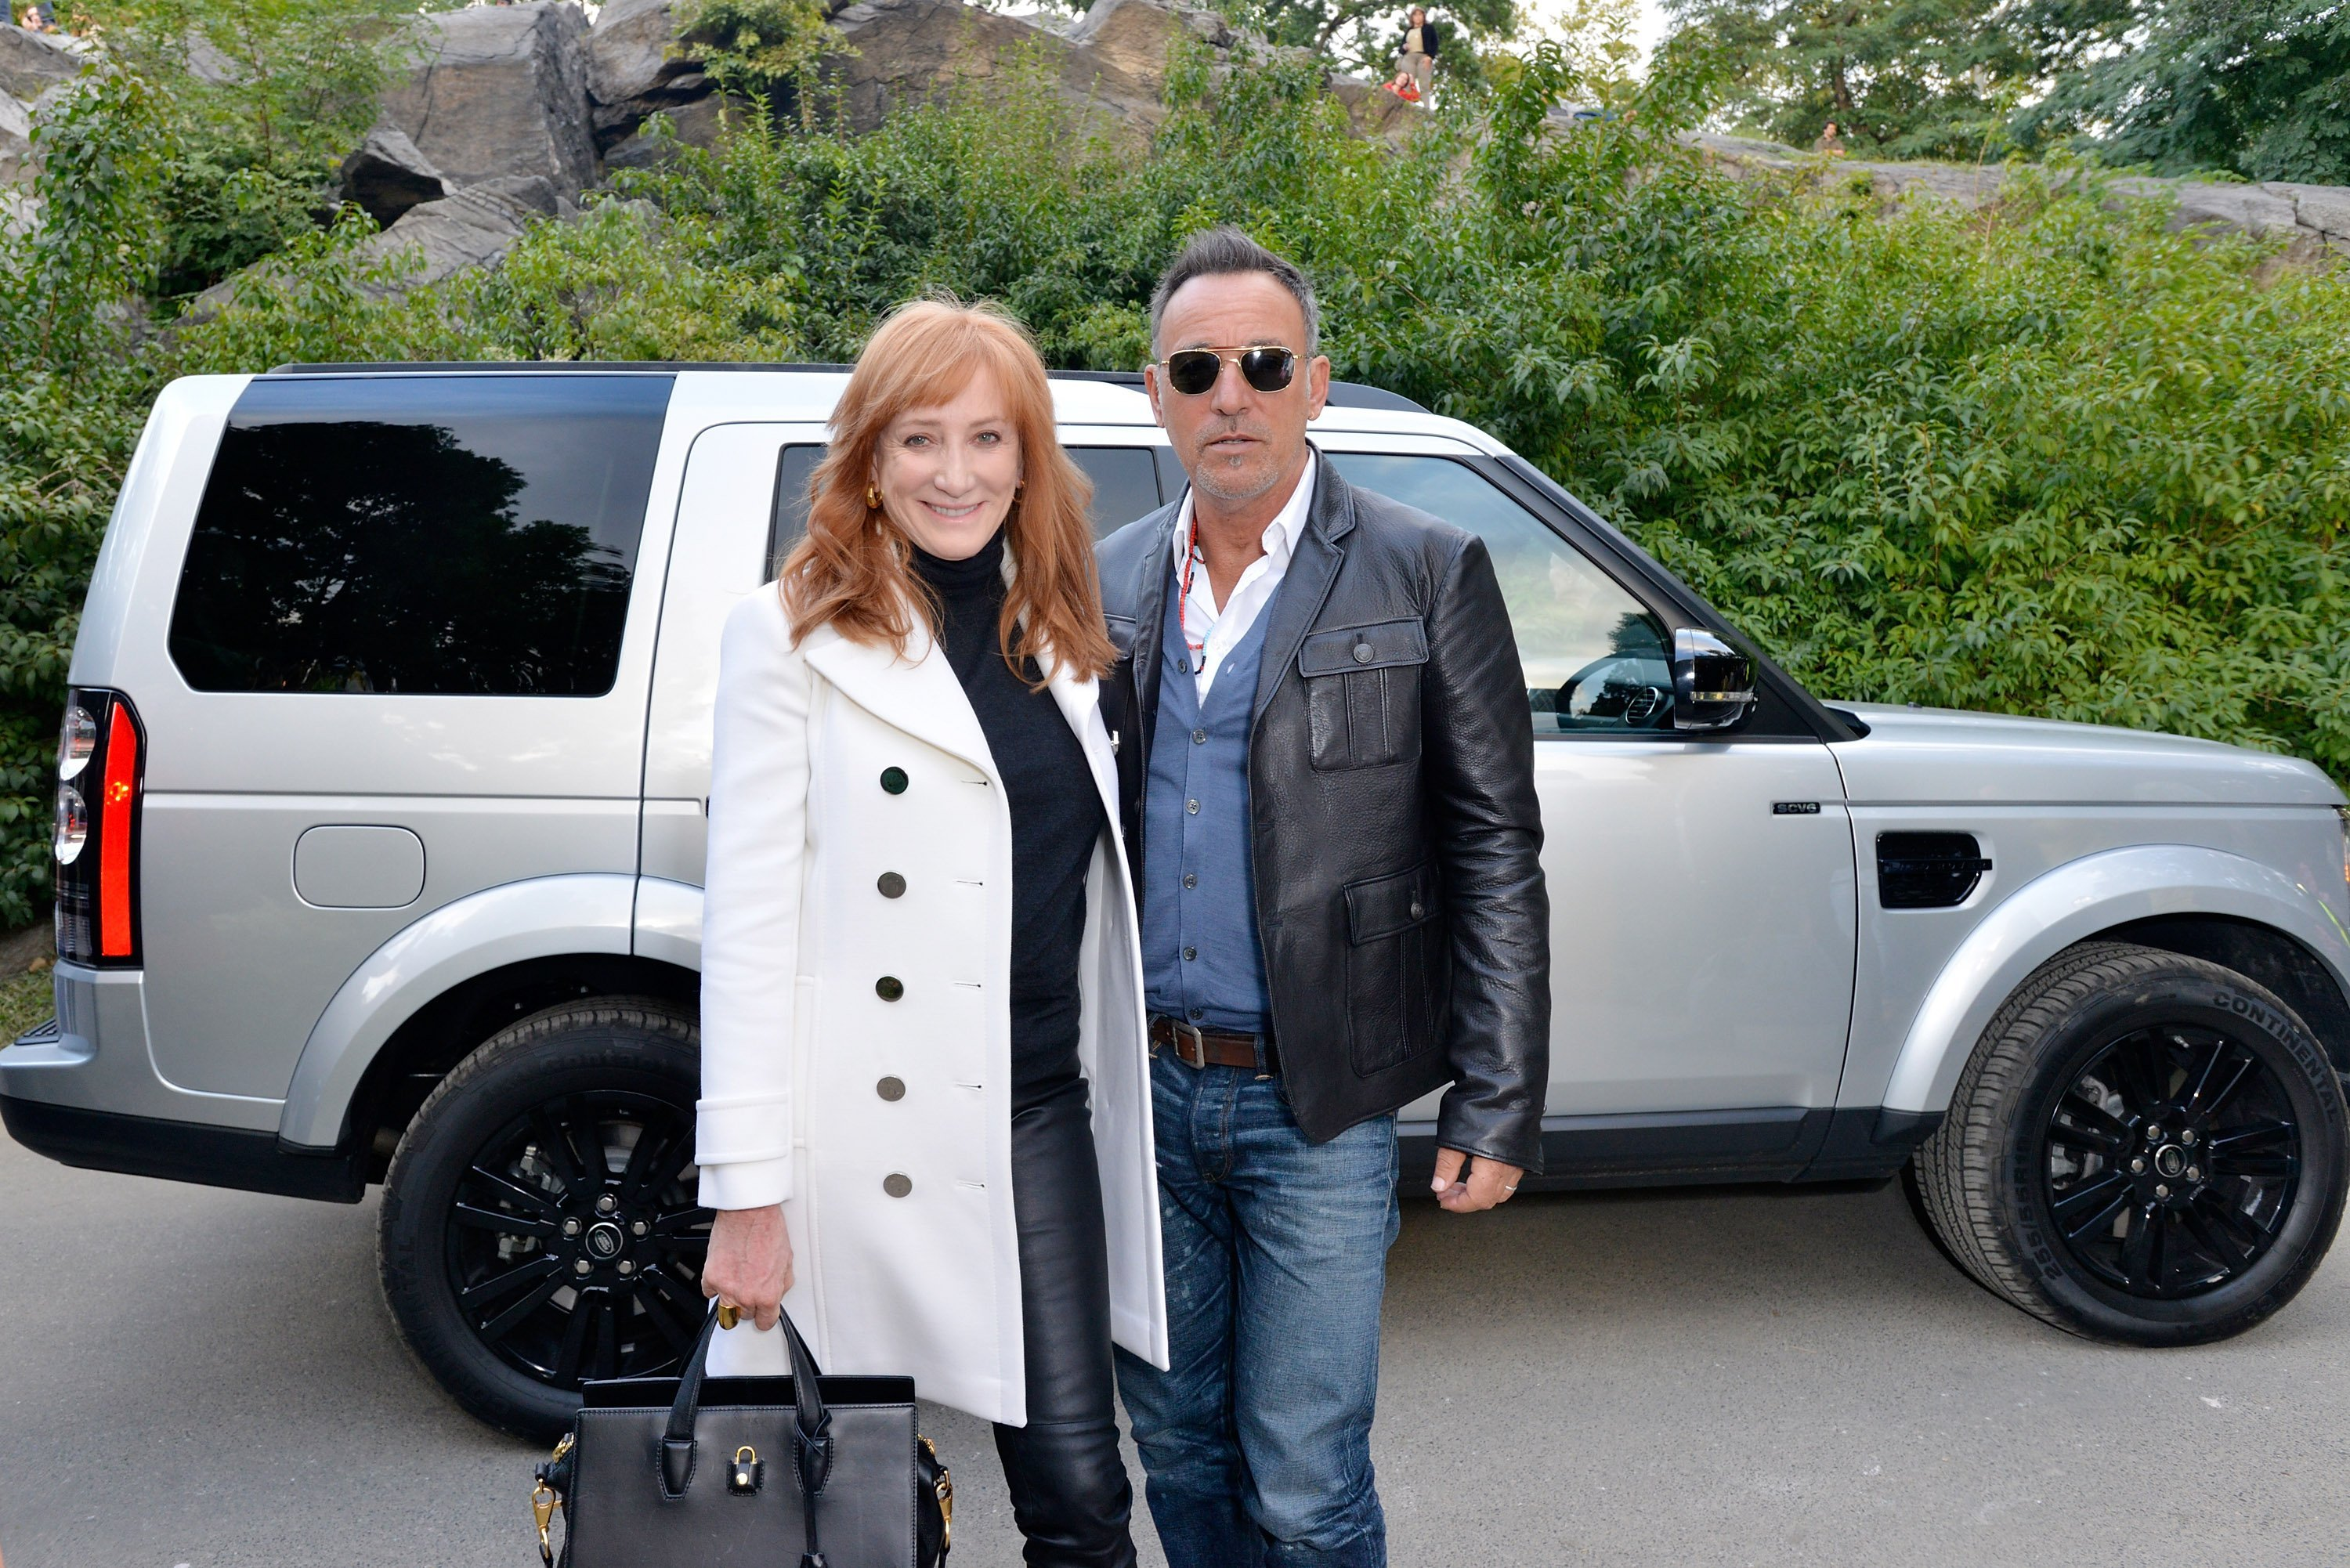 Patti Scialfa and Bruce Springsteen attend the Central Park Horse Show. | Source: Getty Images